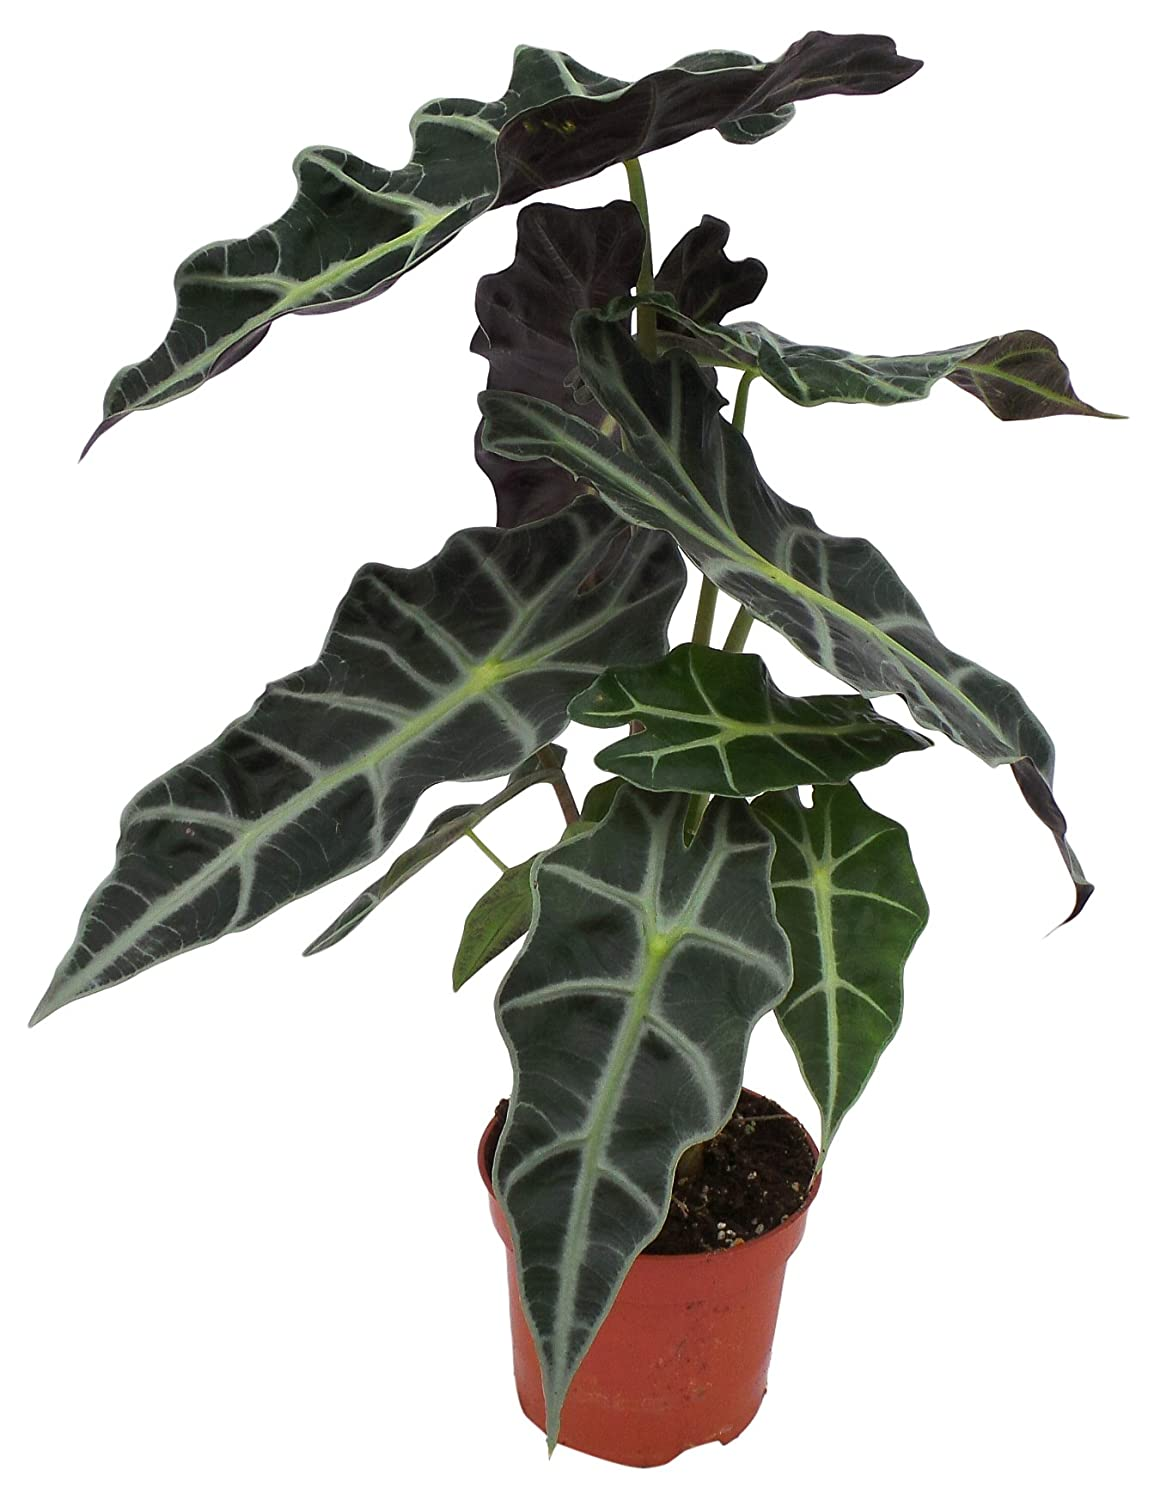 Perfect Plants Alocasia Polly Exotic House 12cm Pot. Approx 35cm Tall Houseplant, Dark Green, 35 cm